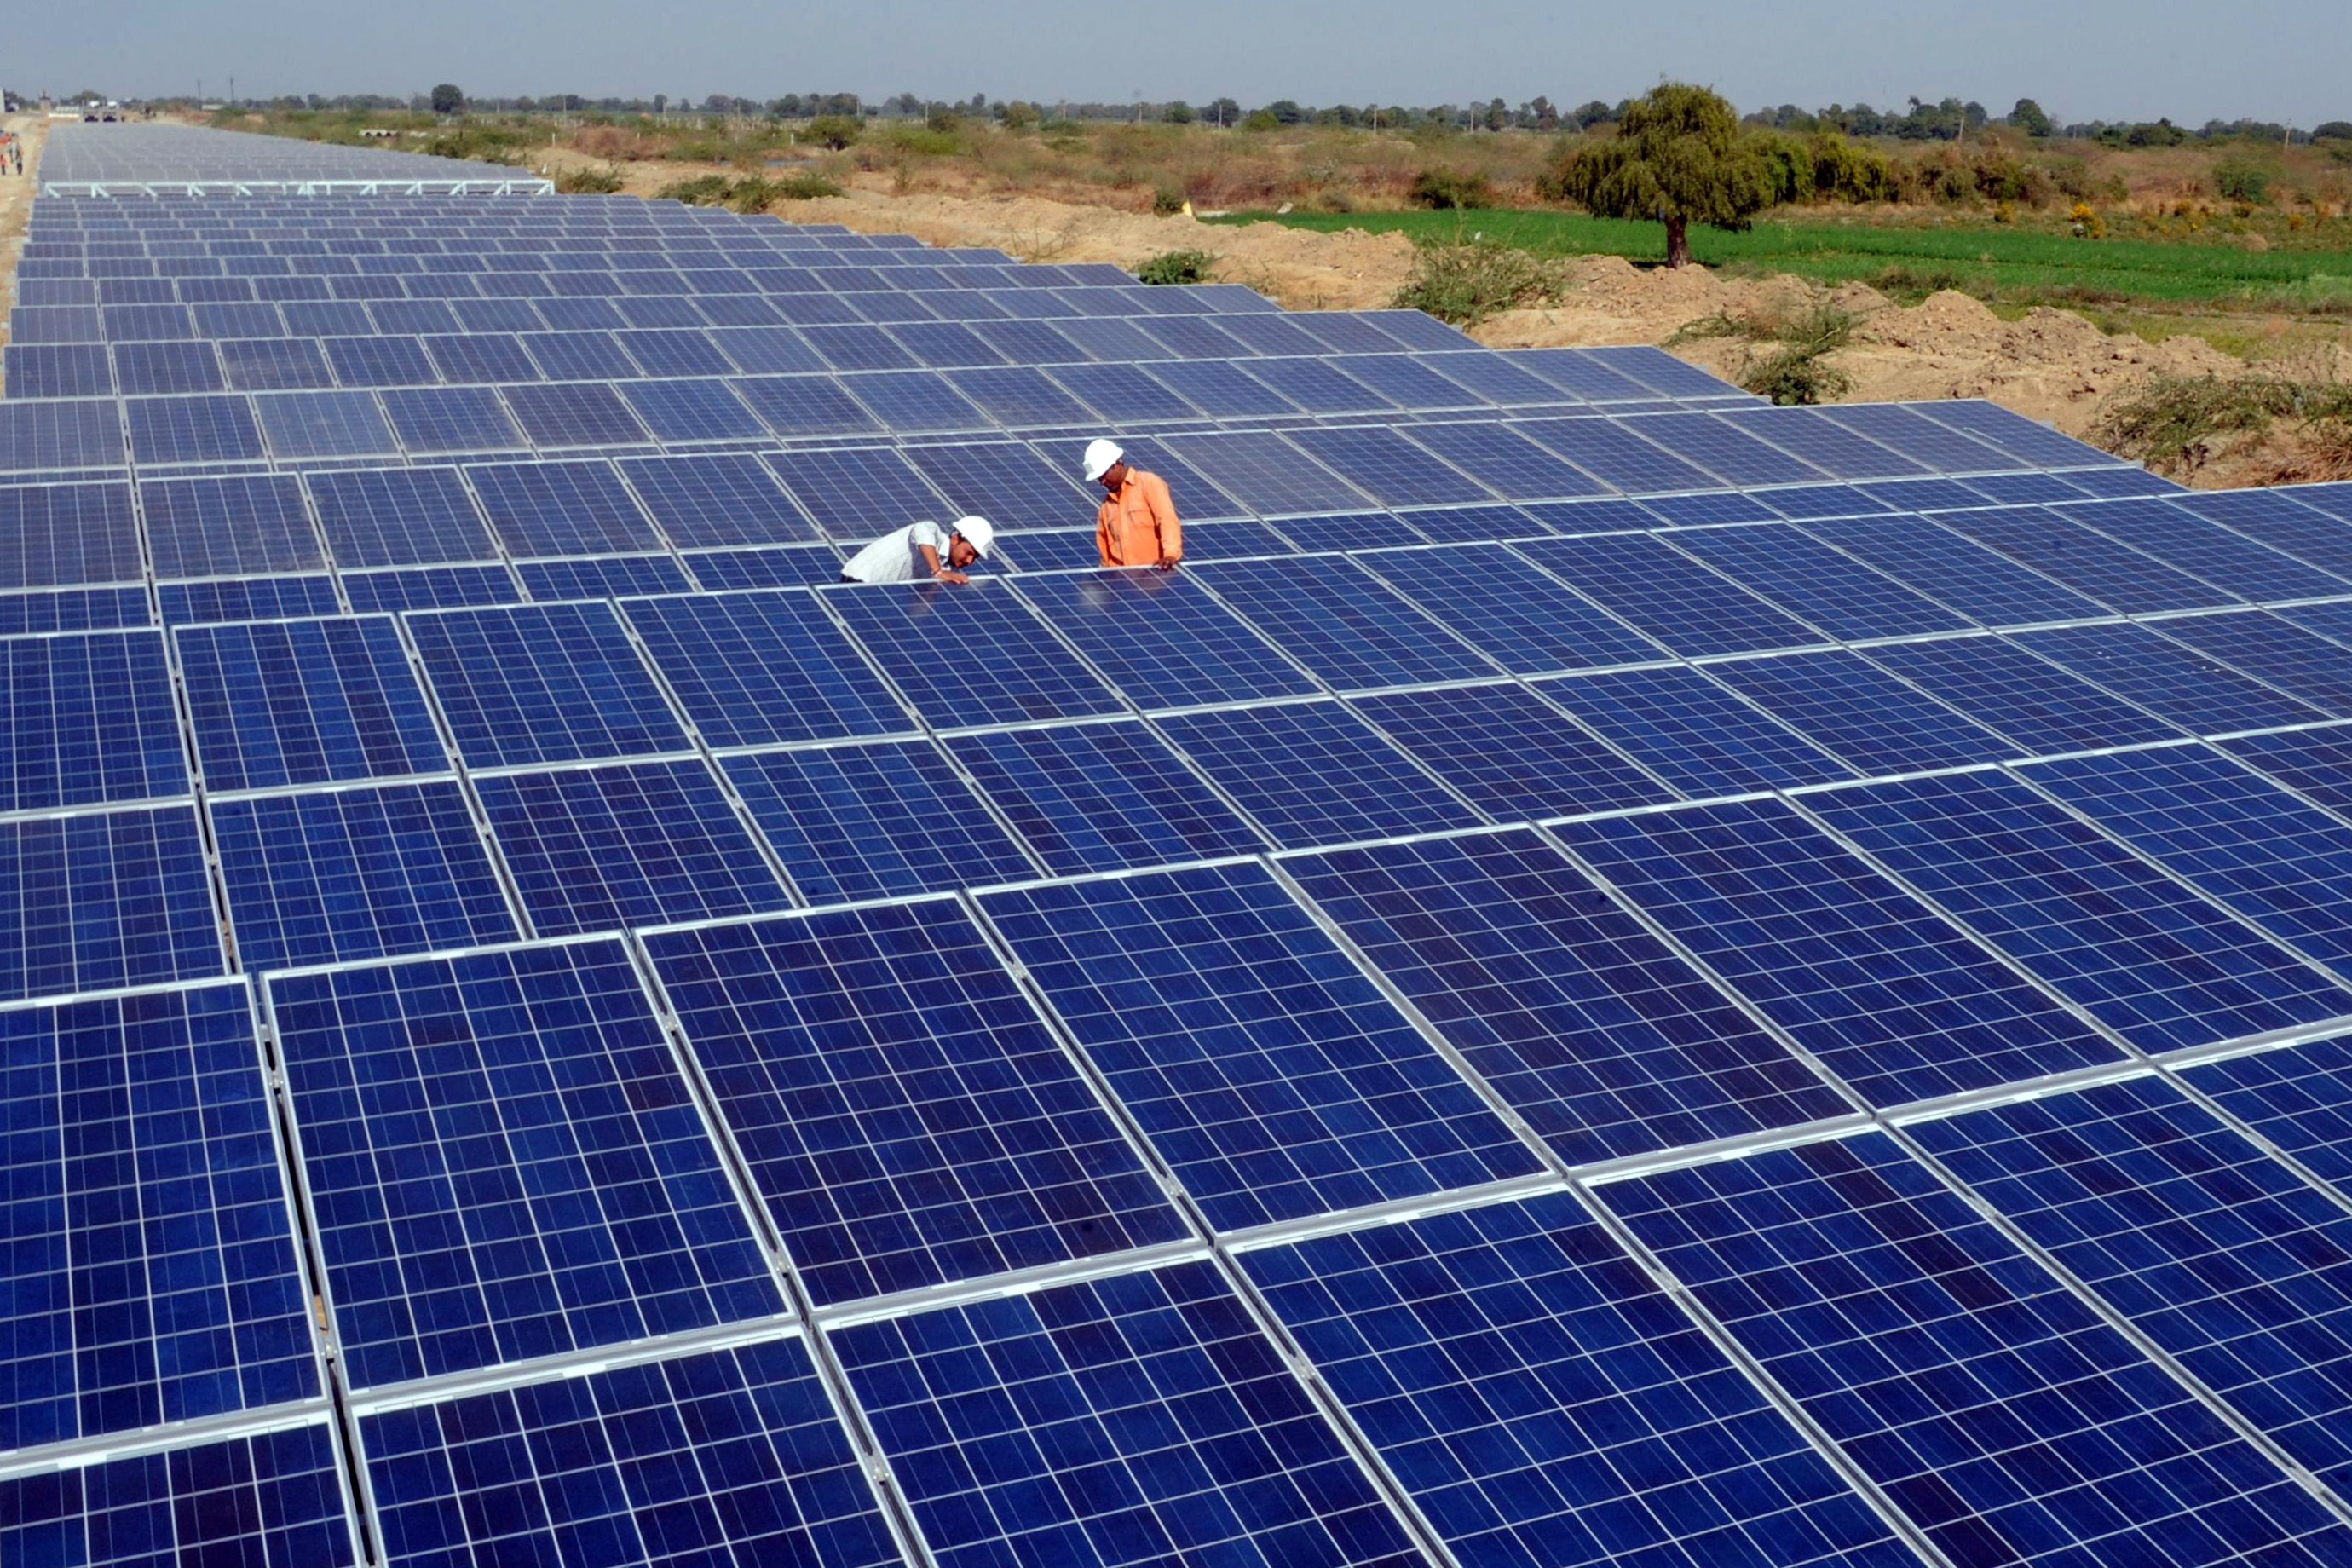 Vivint solar reviews california - Watching Sunedison S Collapse Solar Industry Resets Mit Technology Review